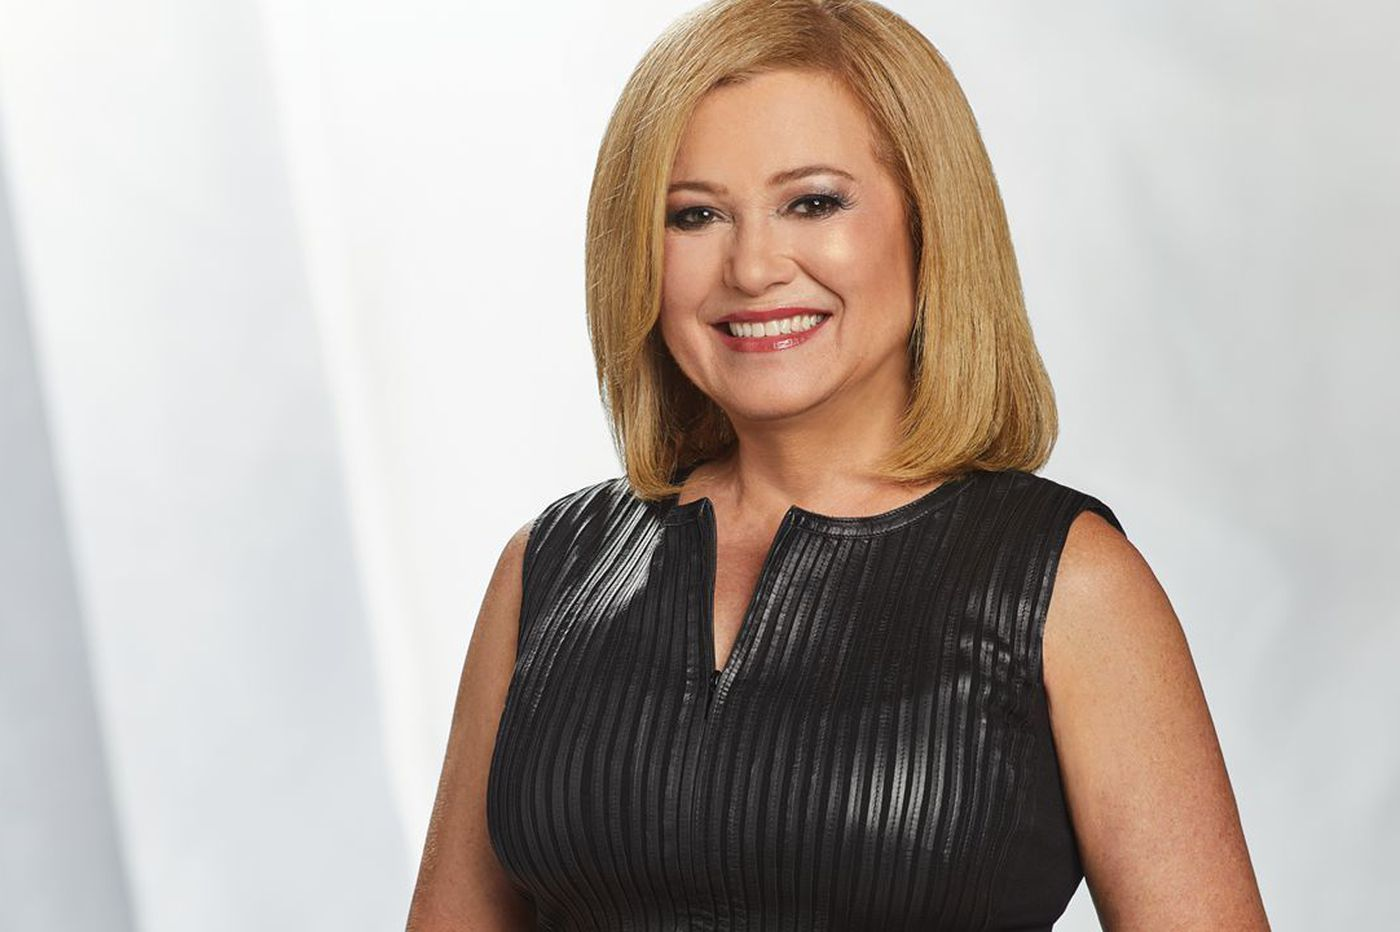 Monica Malpass signs off 'Action News' after 31 years at 6ABC